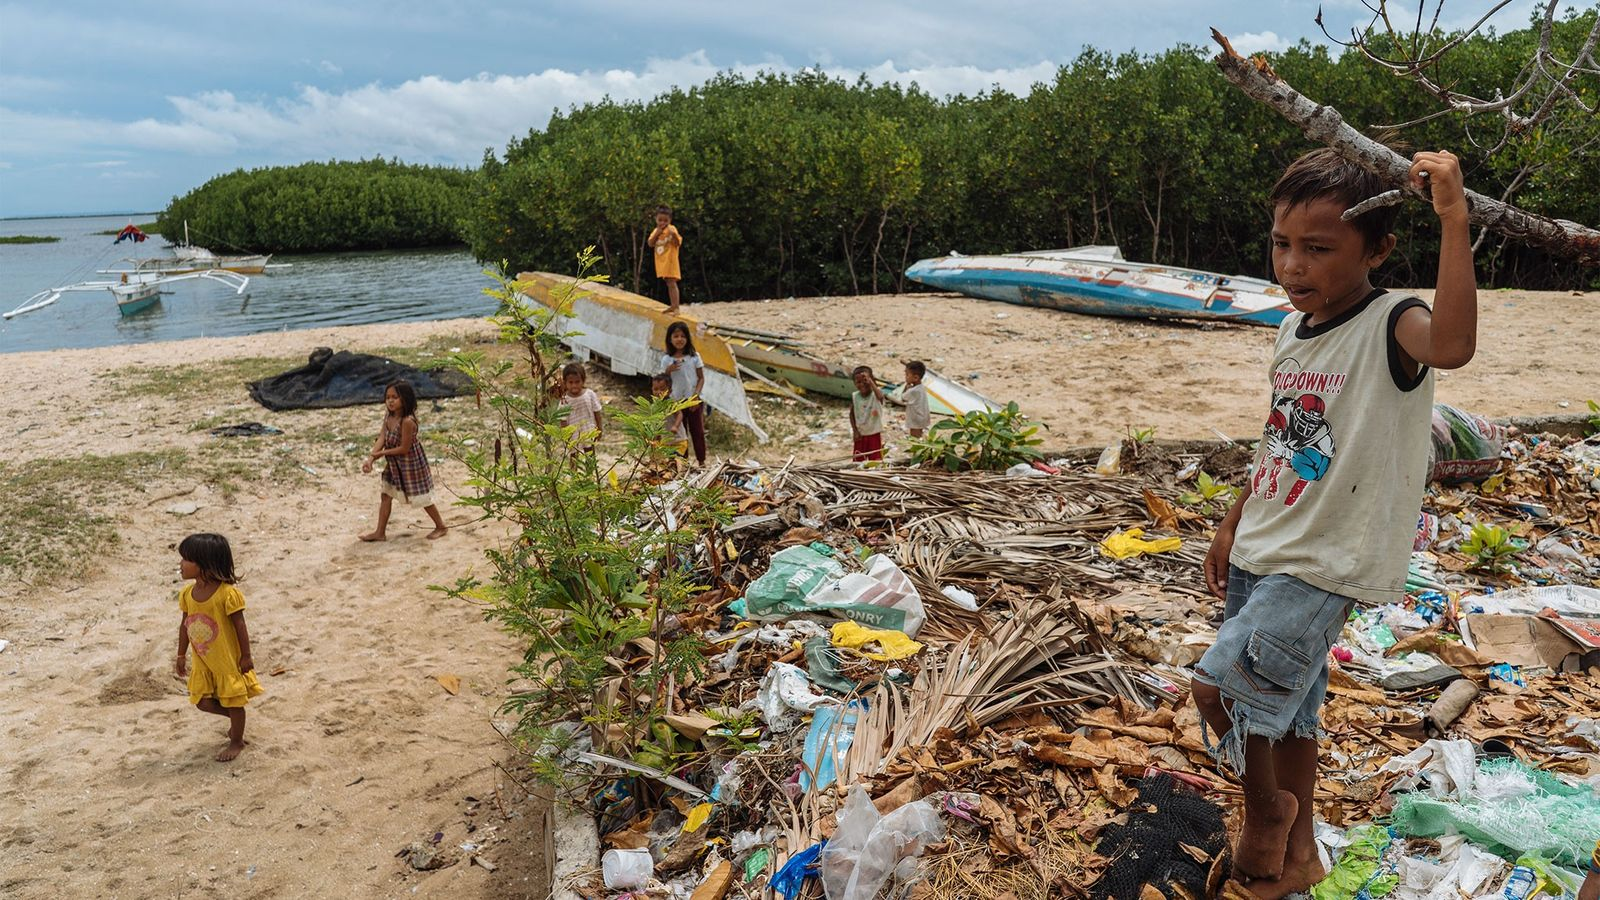 Children play by a dumping area in Bohol, Philippines. During high tide and rains, the waste ...